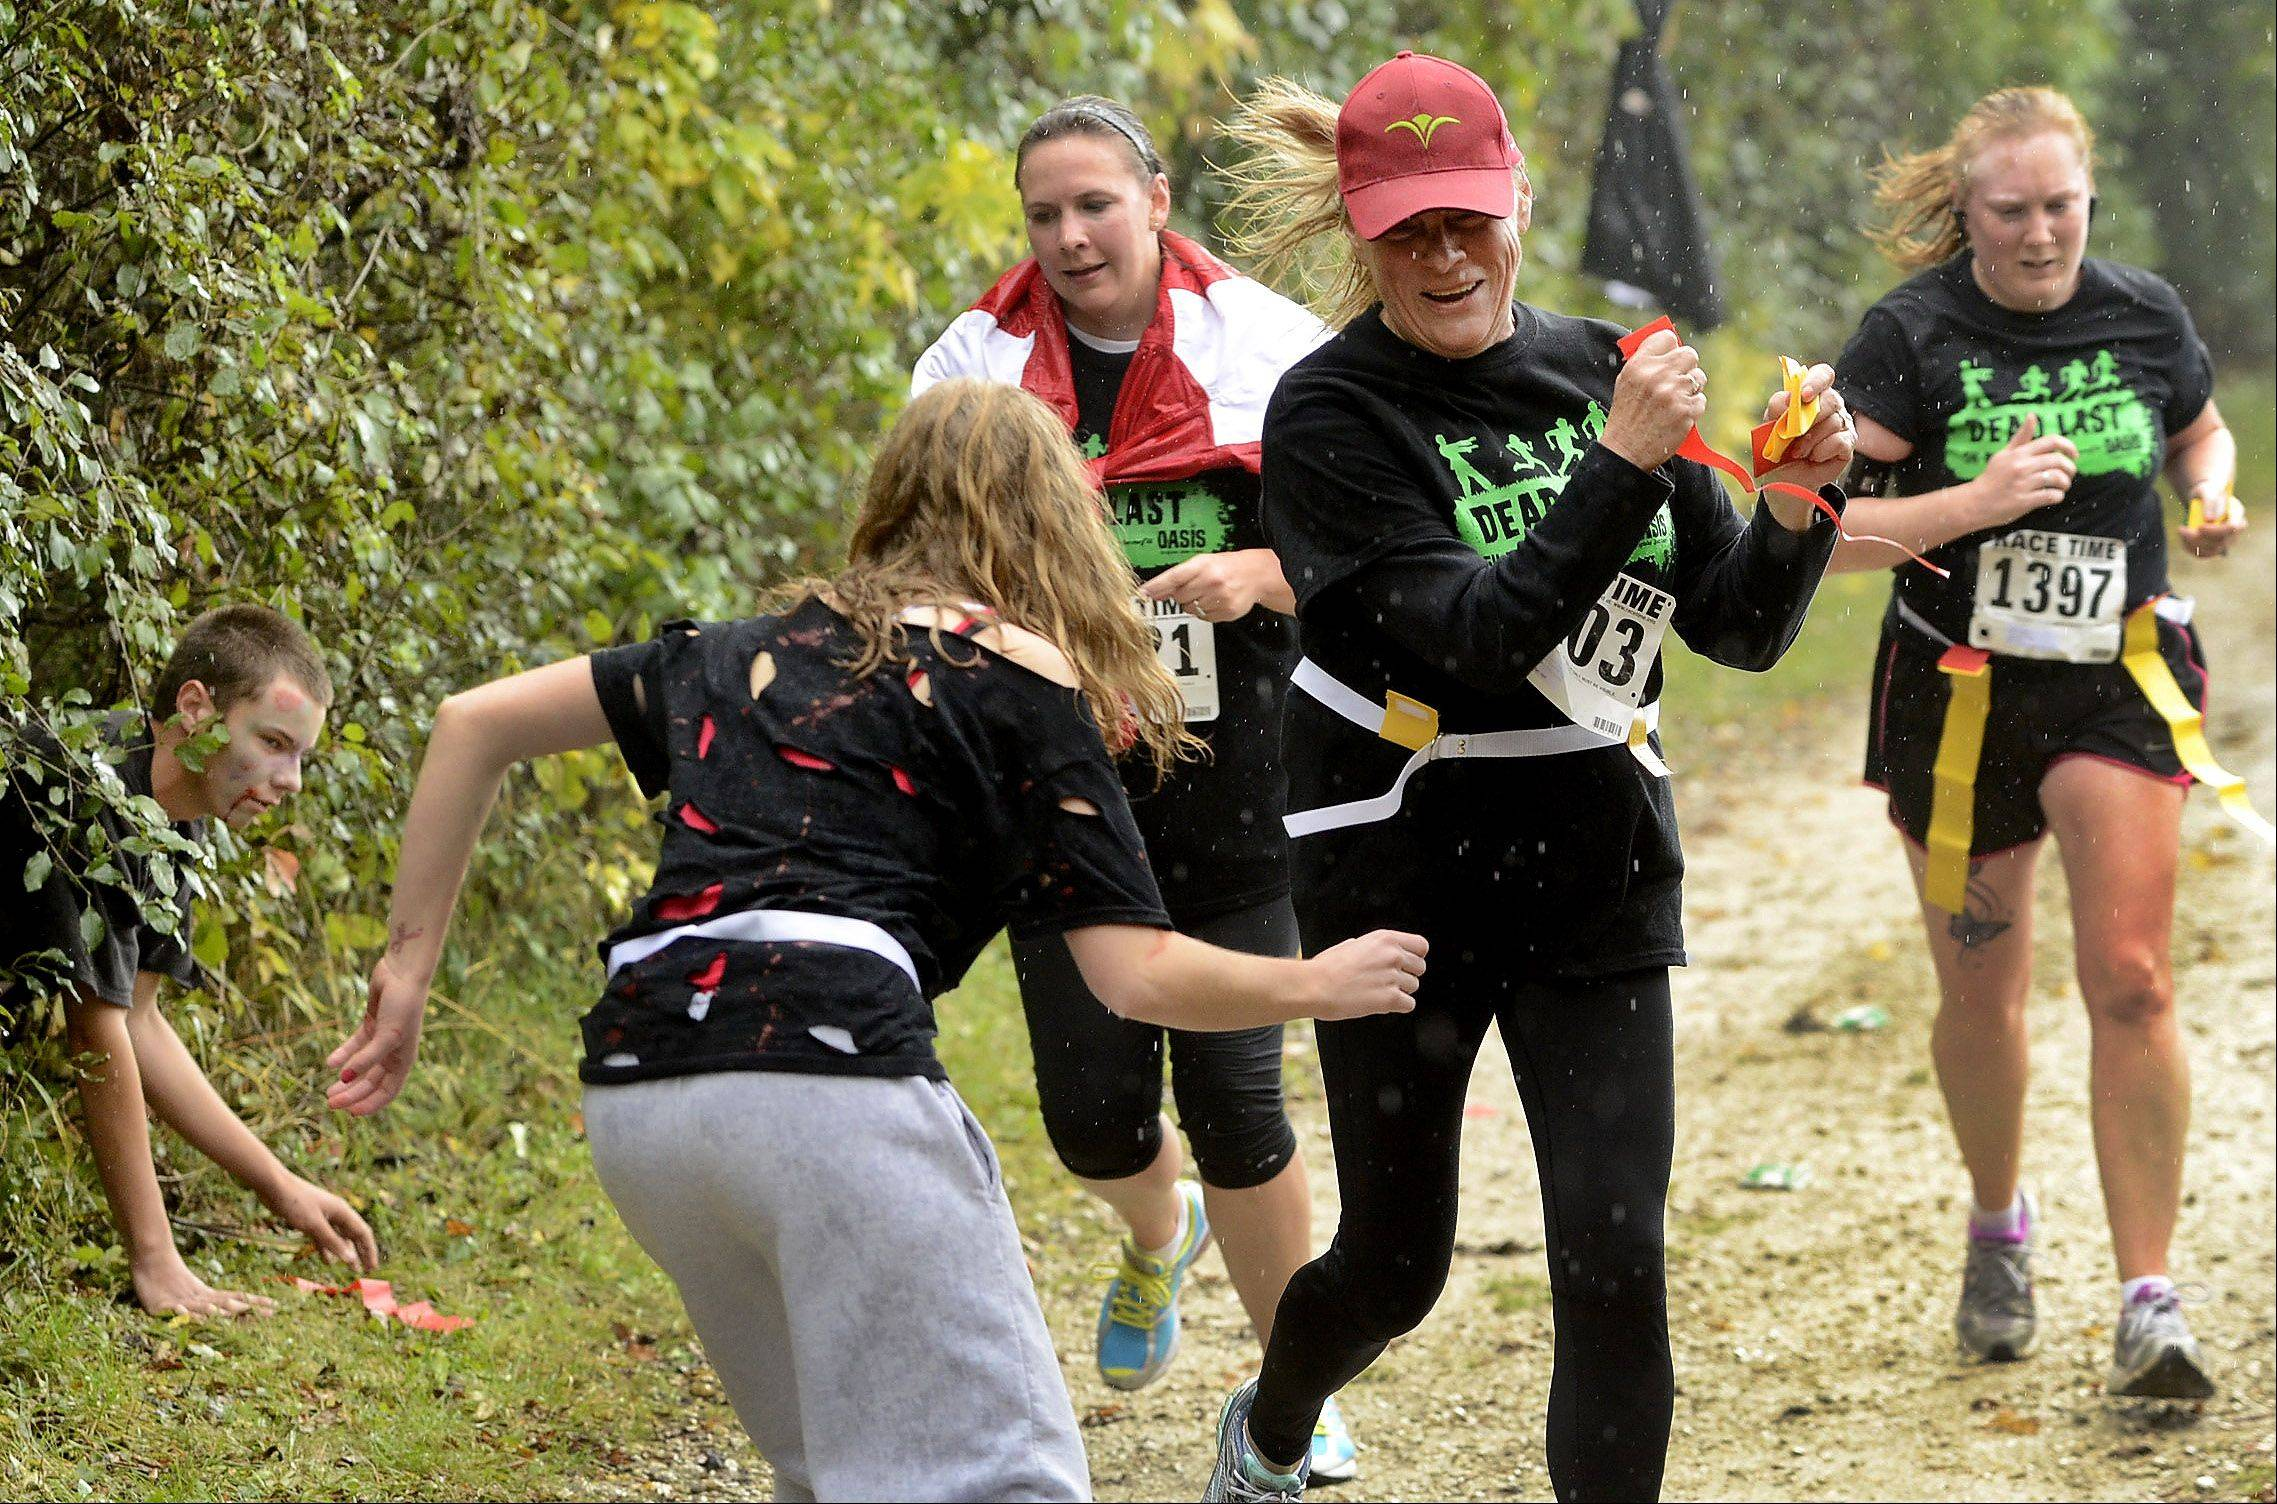 Zombie Cannon Hanebuth, a senior at Grayslake North High School, center, torments runners Saturday along the route during Grayslake's inaugural zombie run.